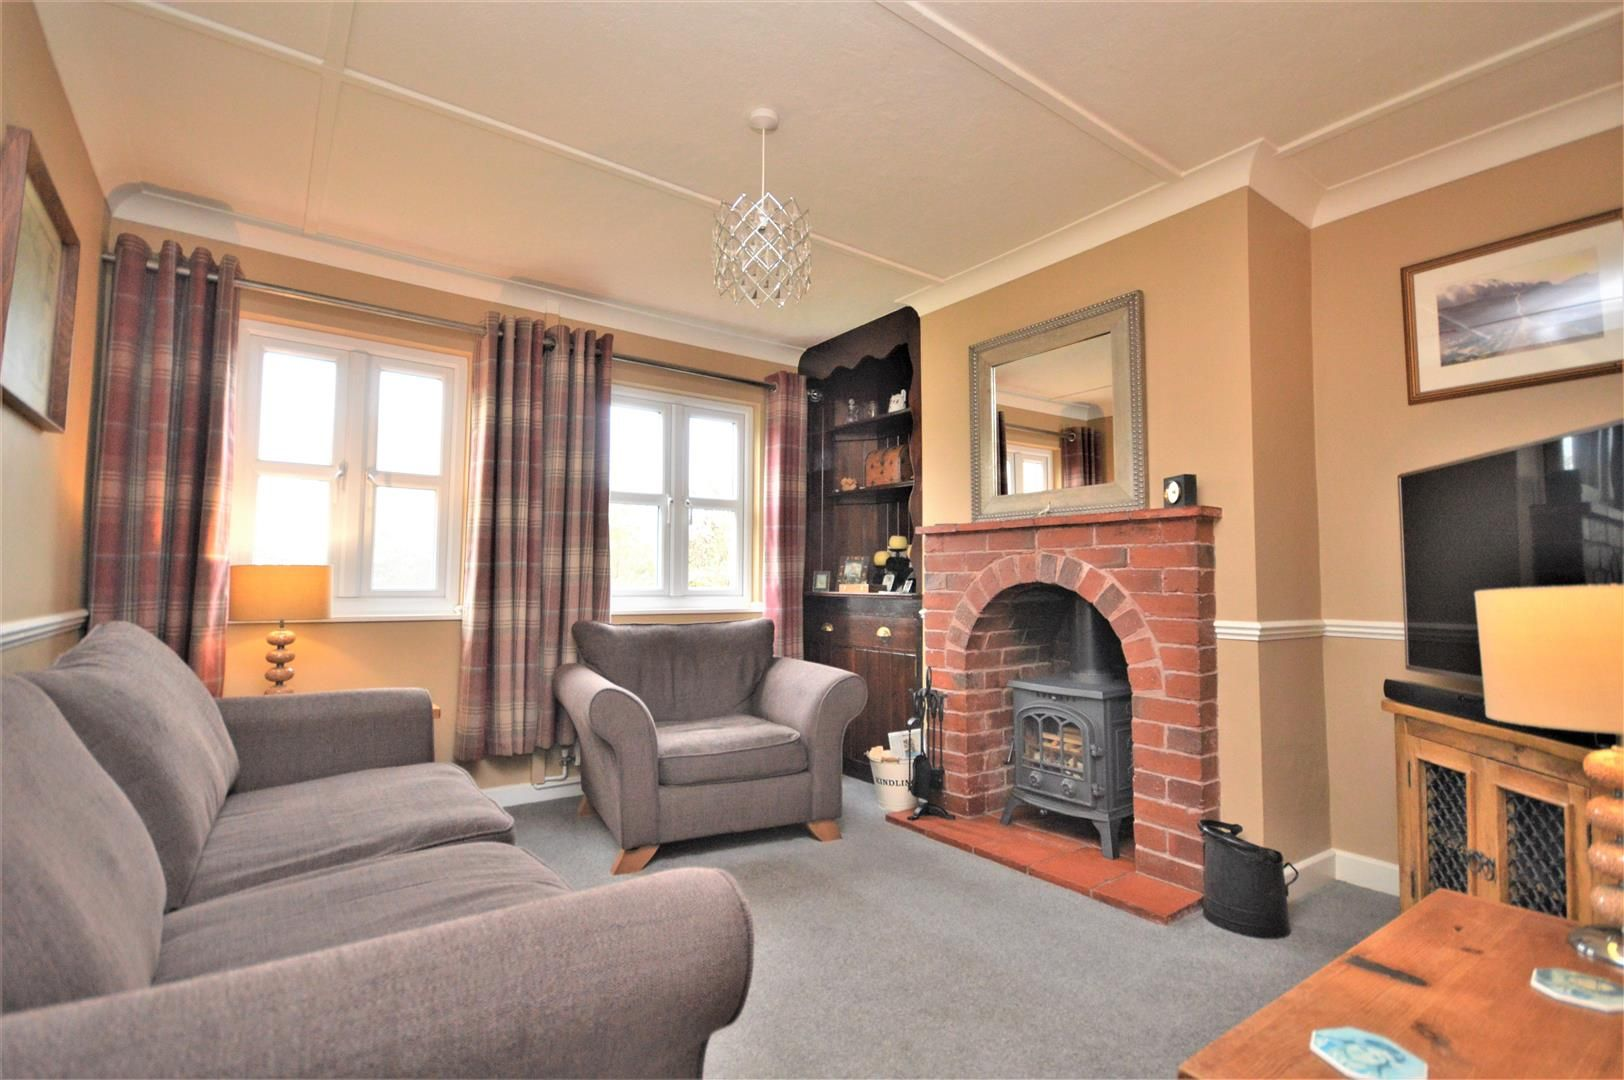 3 bed semi-detached for sale in Sutton St. Nicholas  - Property Image 3